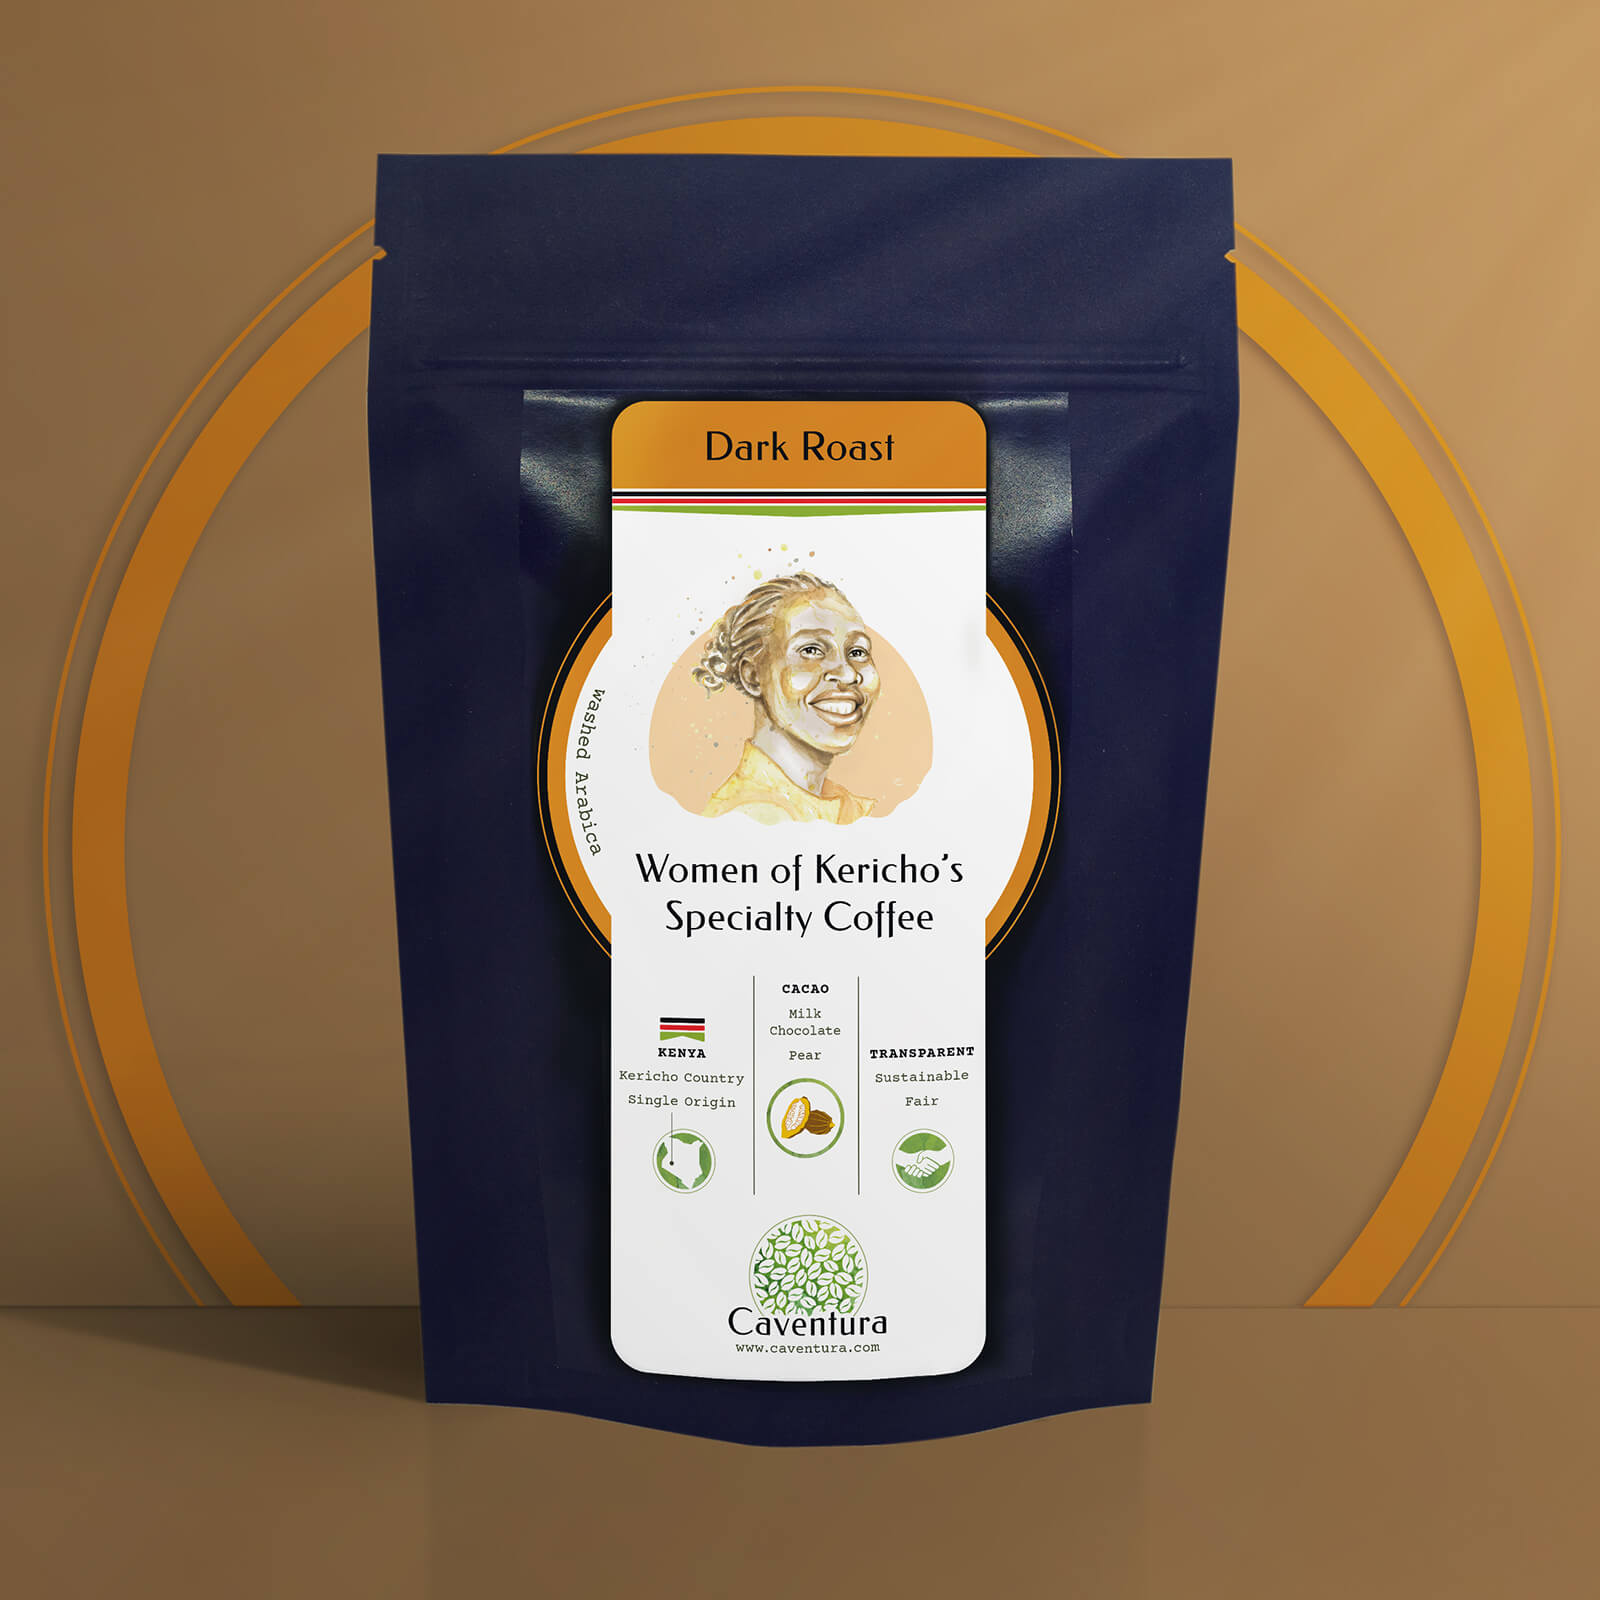 Women of Kericho's Specialty Coffee – Dark Roast